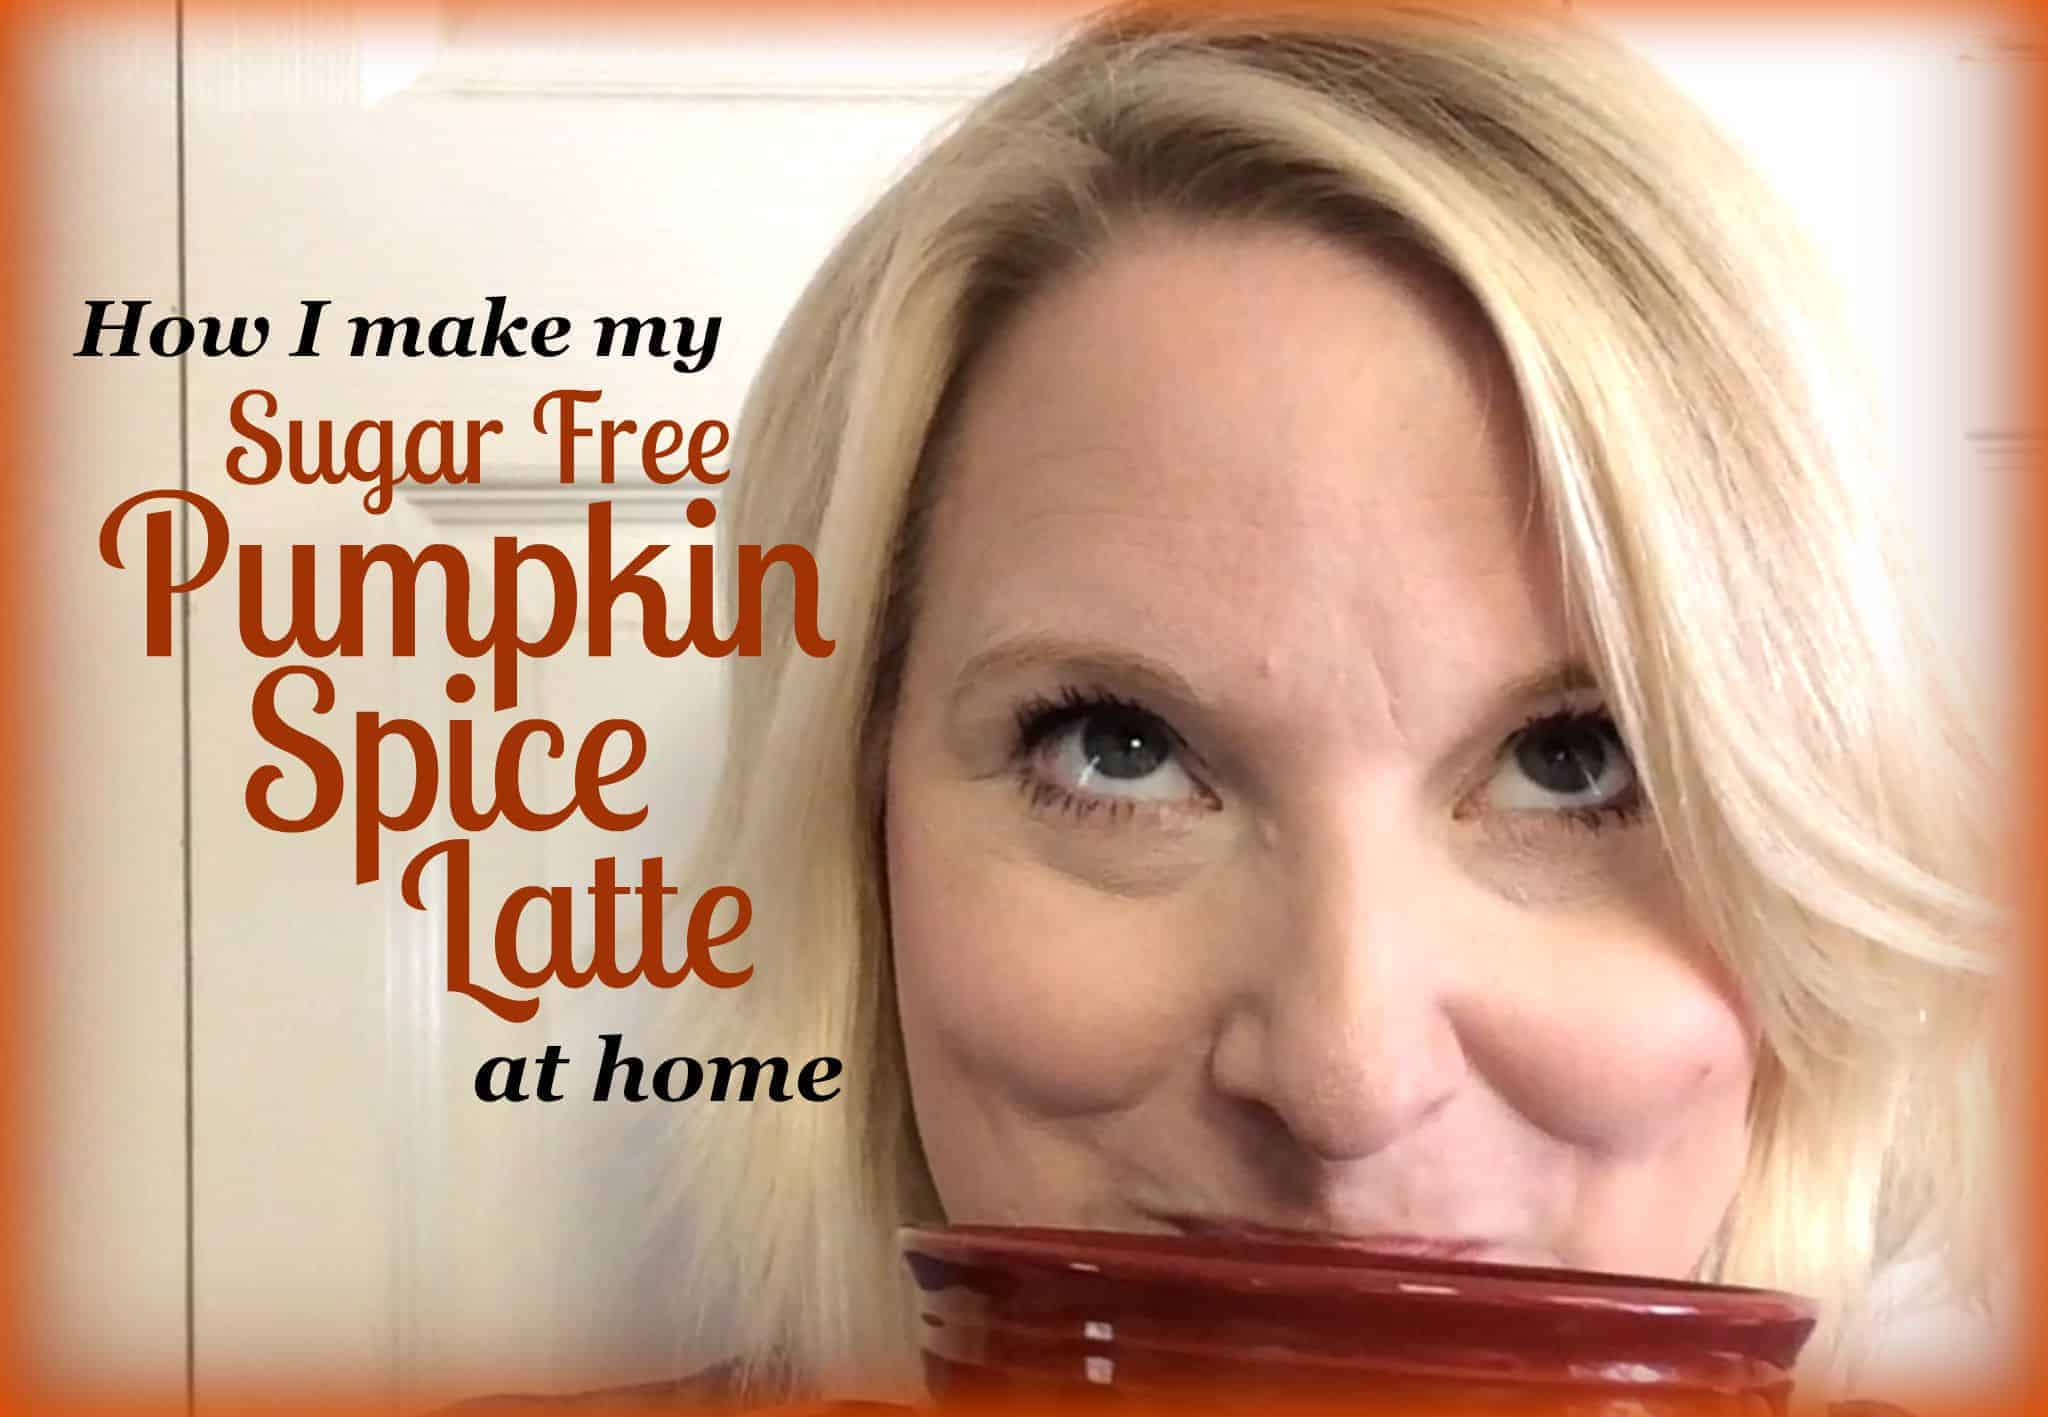 How i make my sugar free pumpkin spice latte at home for Build my house online free